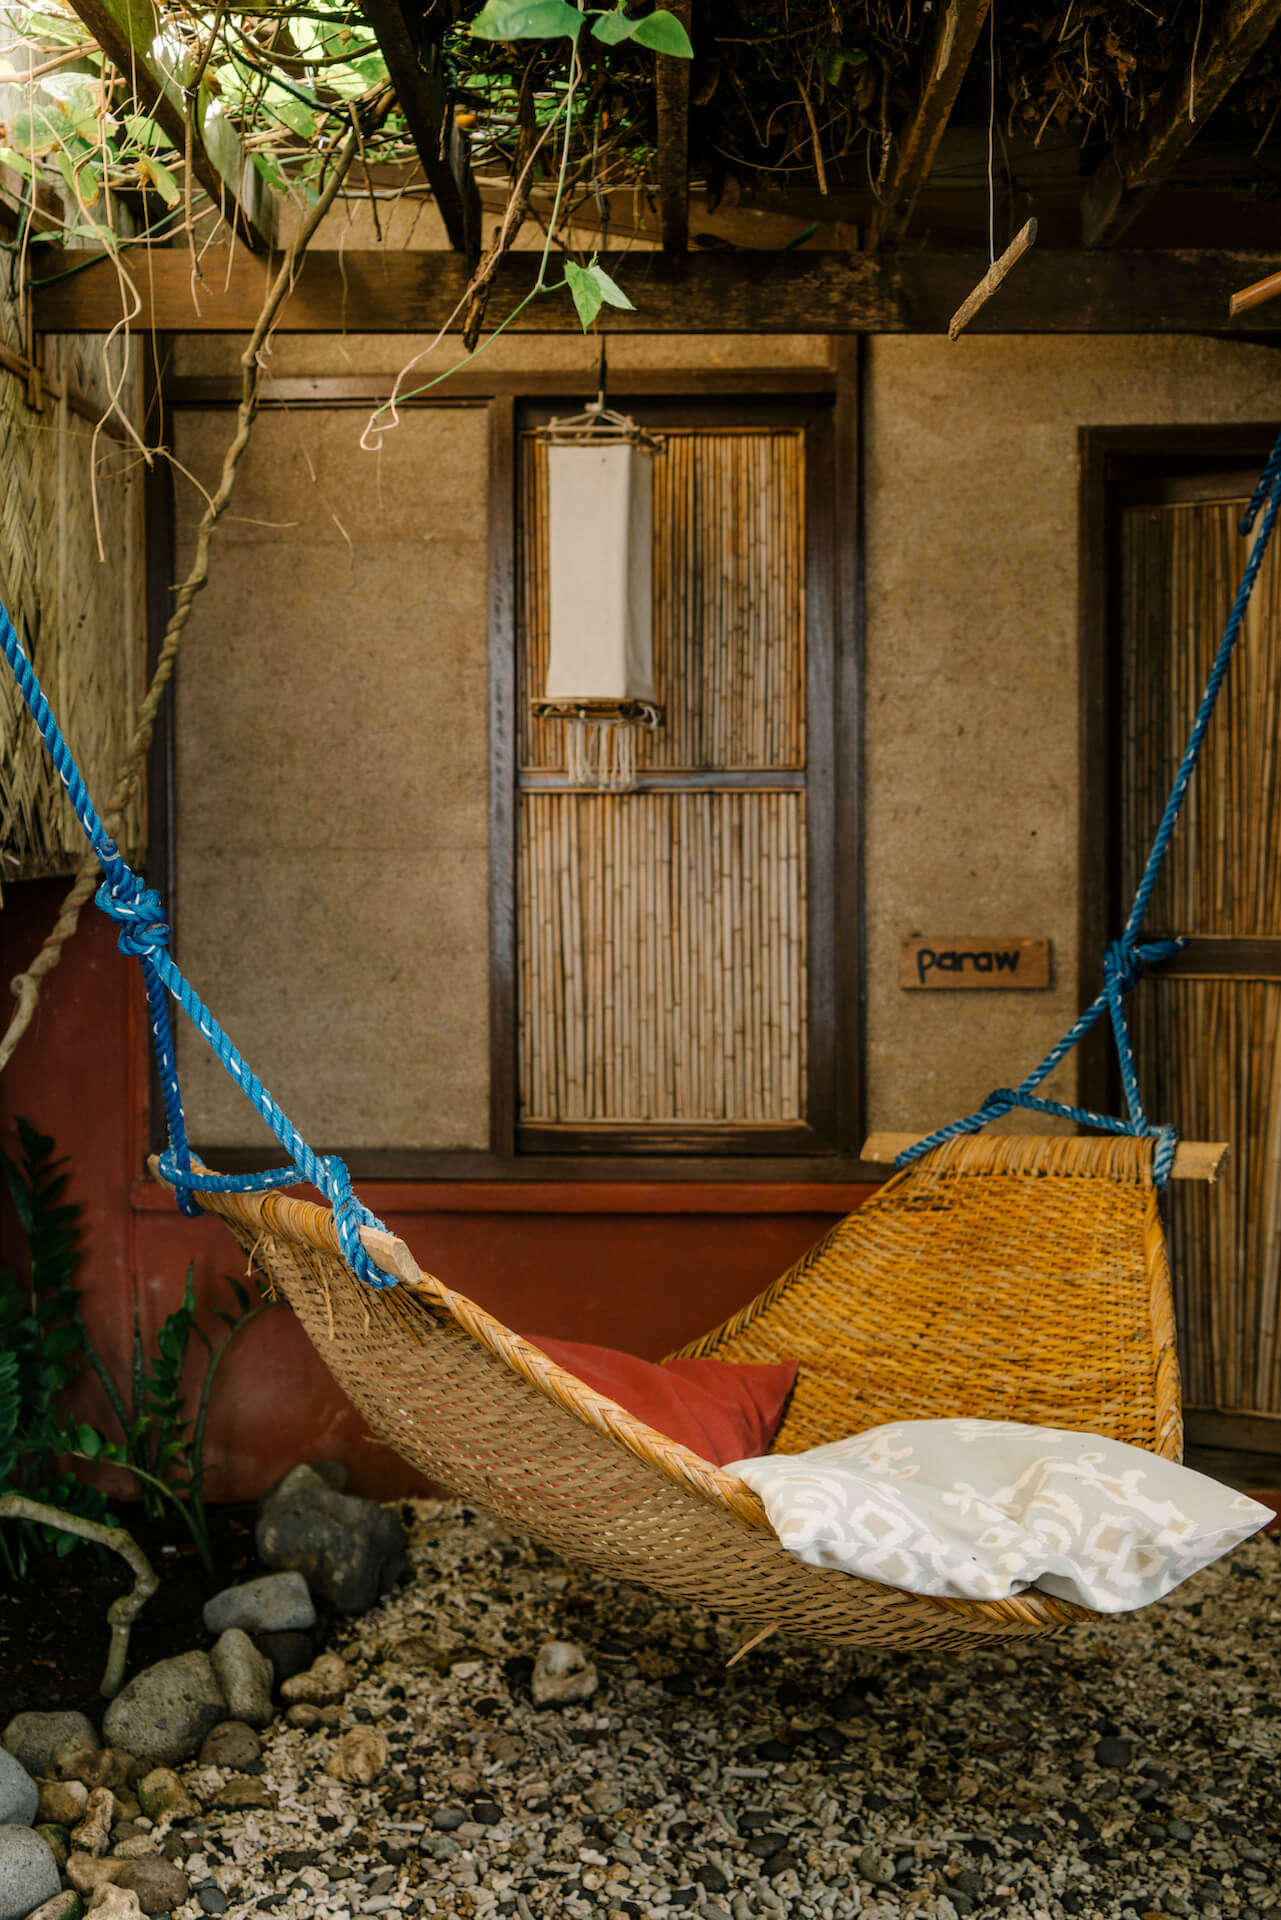 A hammock for guests at Lilom Resort in Batangas